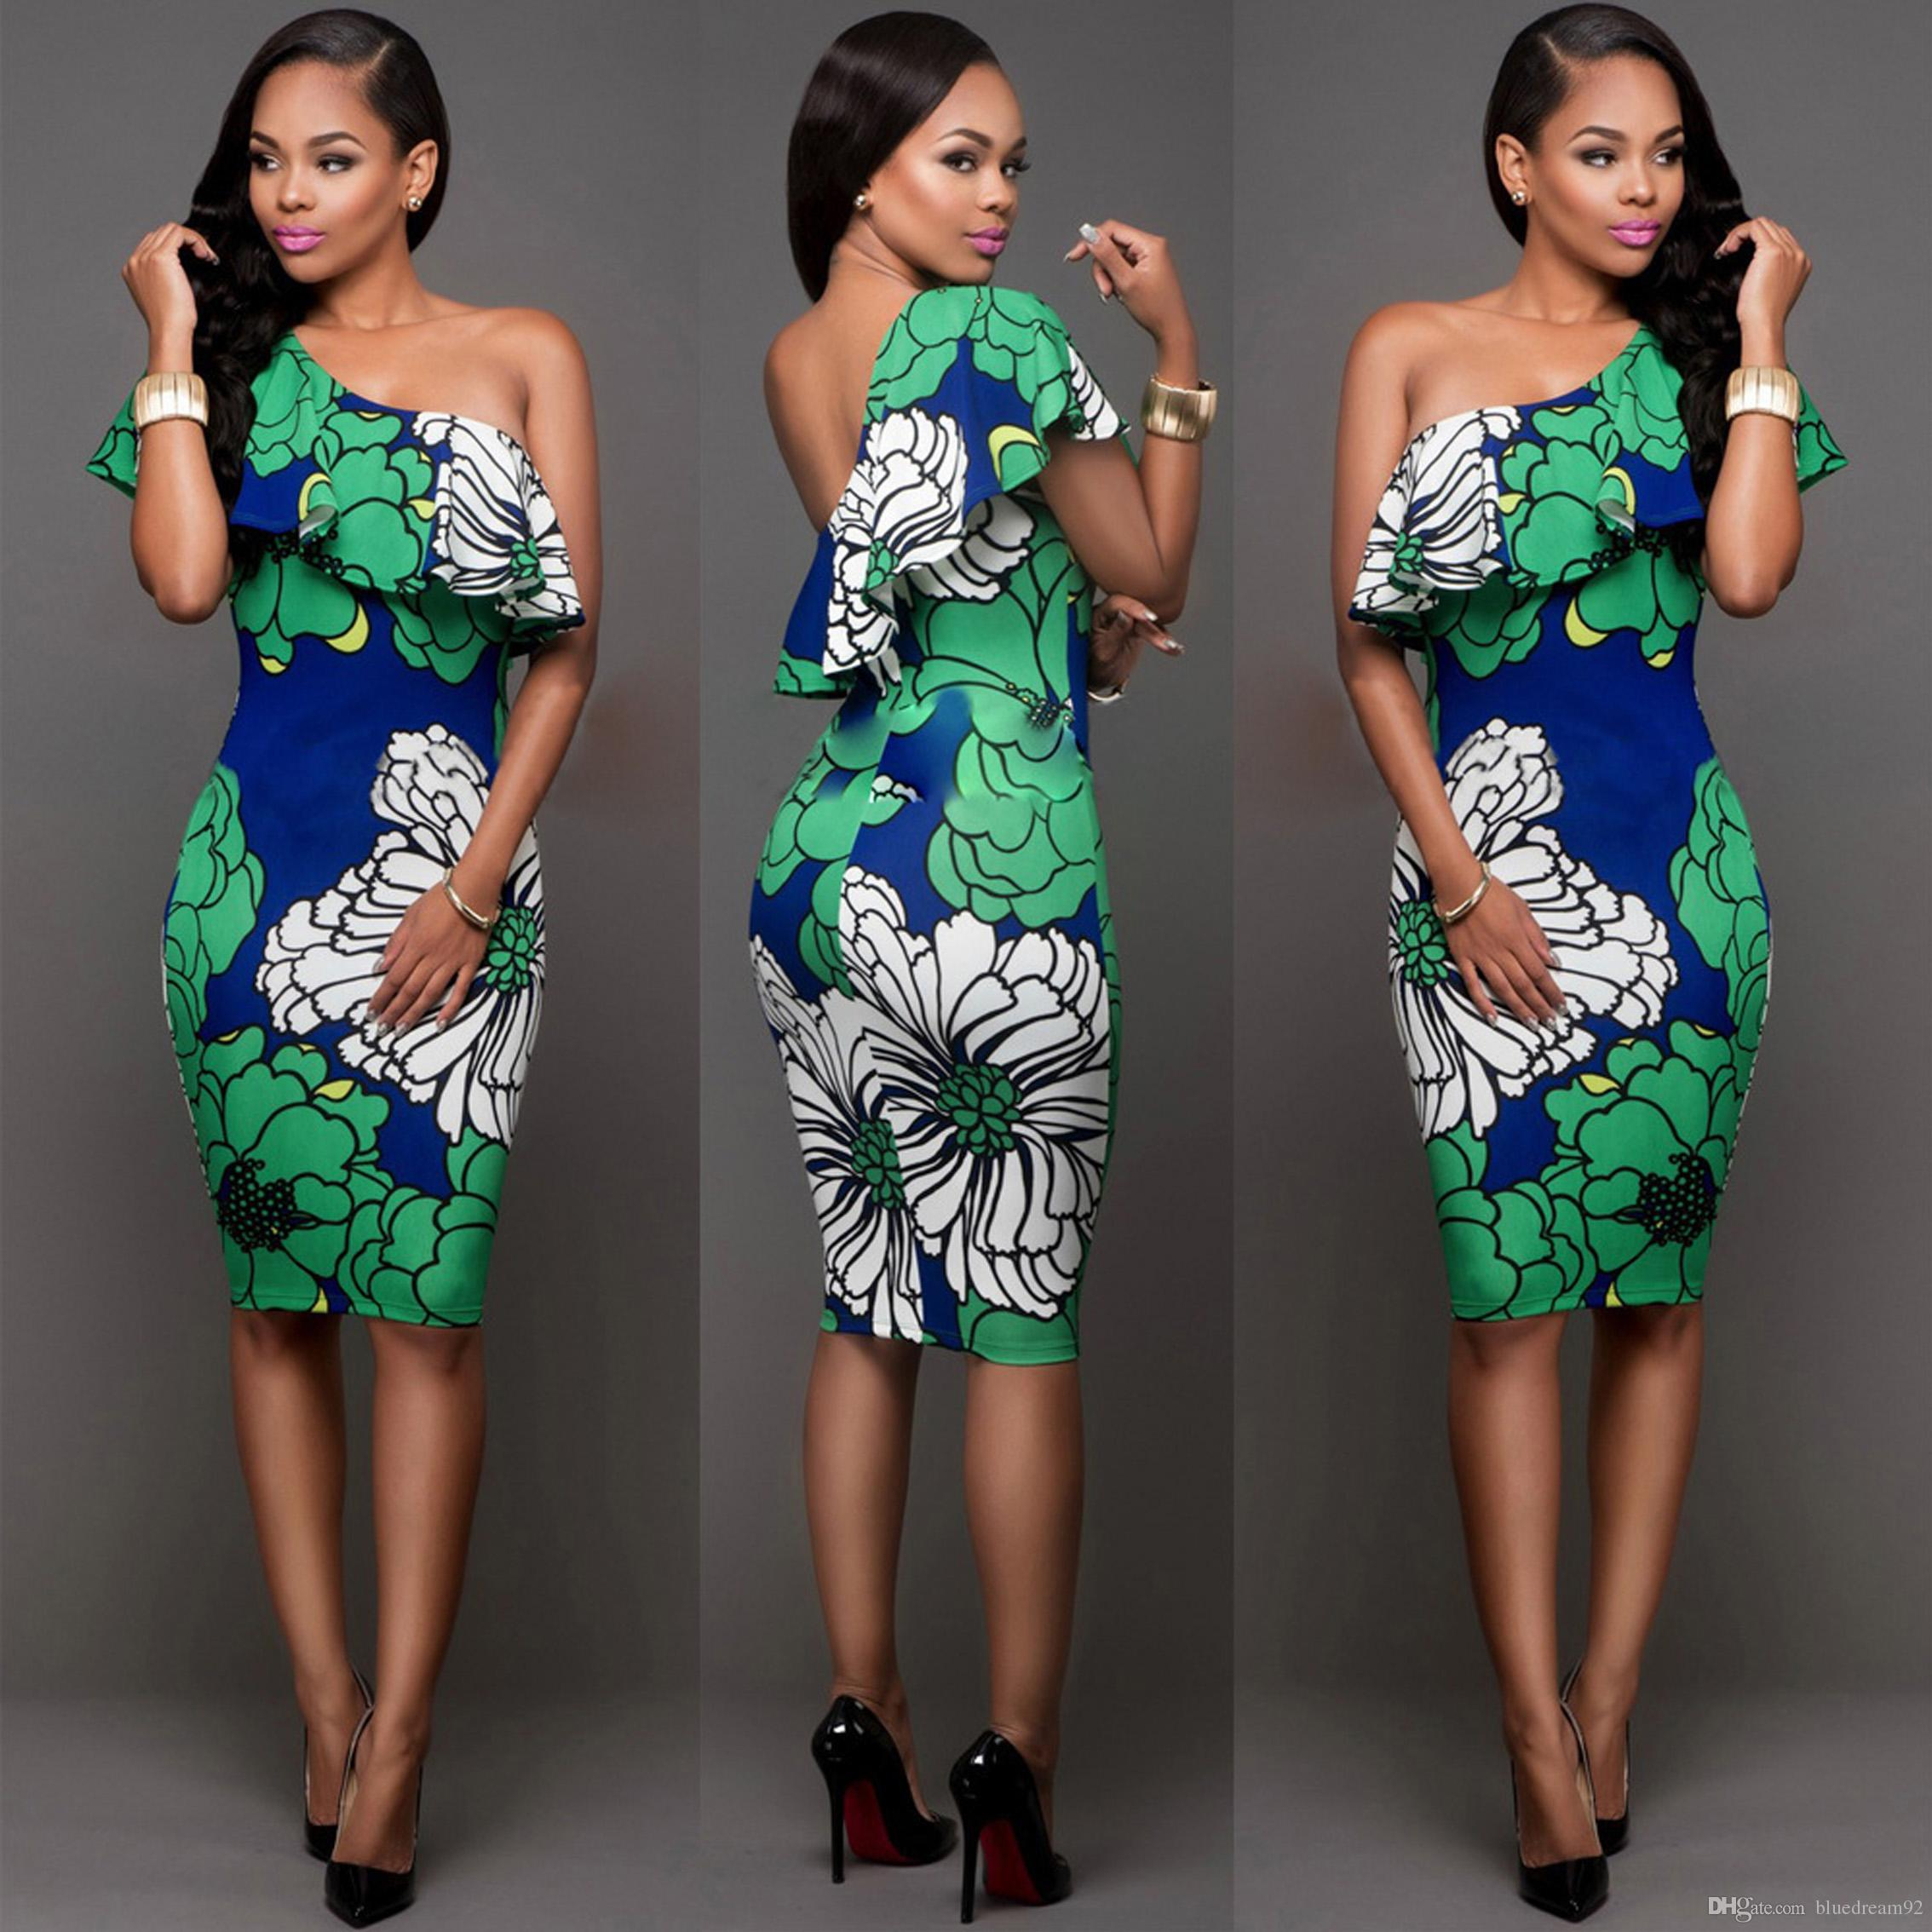 50be9365bcc 2019 Cocktail Dress Night Club Fashion Bodycon Shoulder Sexy Woman Dress  Summer Party Bandage Floral Print Dress Women Clothing Club Dresses From ...